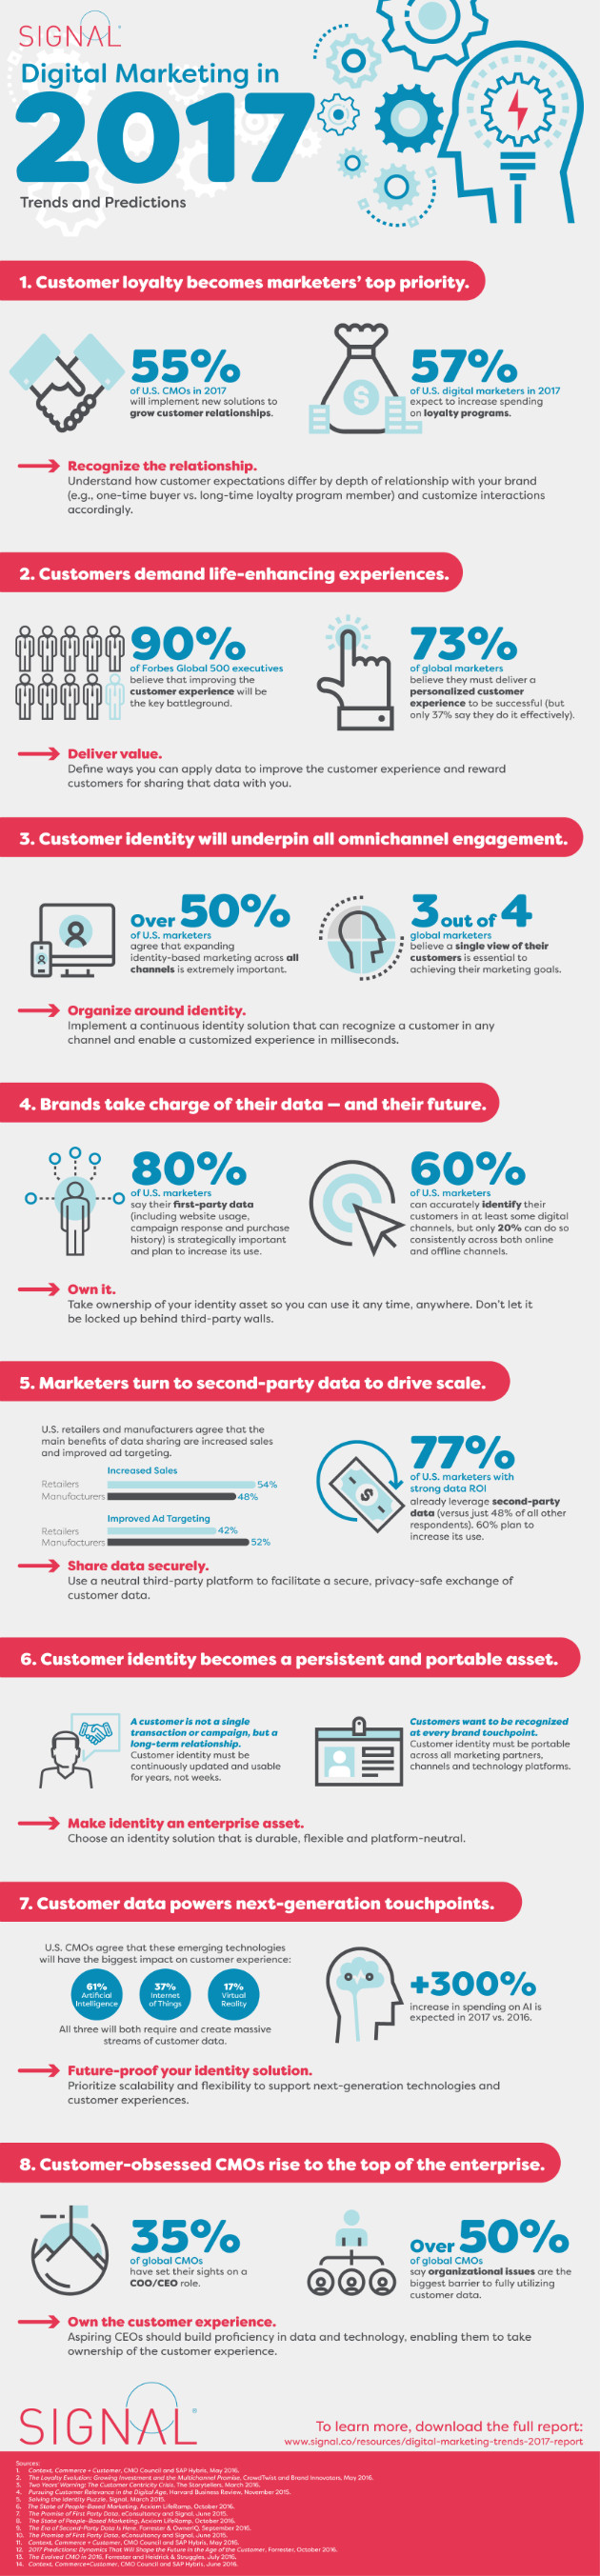 170126-infographic-digital-marketing-trends-predictions